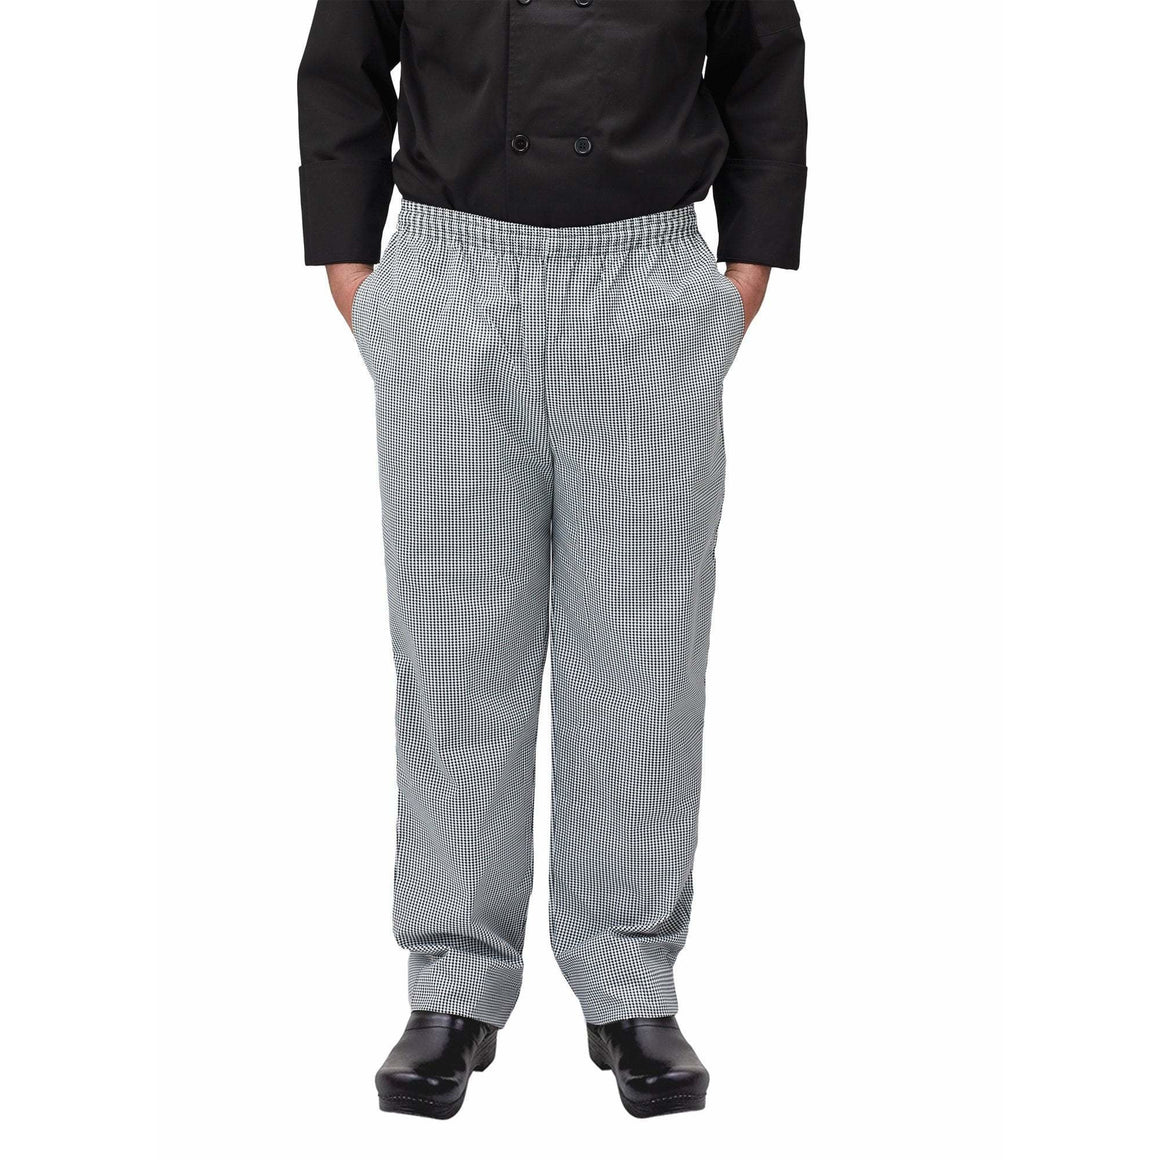 Winco - UNF-4KM - Chef pants, houndstooth, M - Apparel - Maltese & Co New and Used  restaurant Equipment